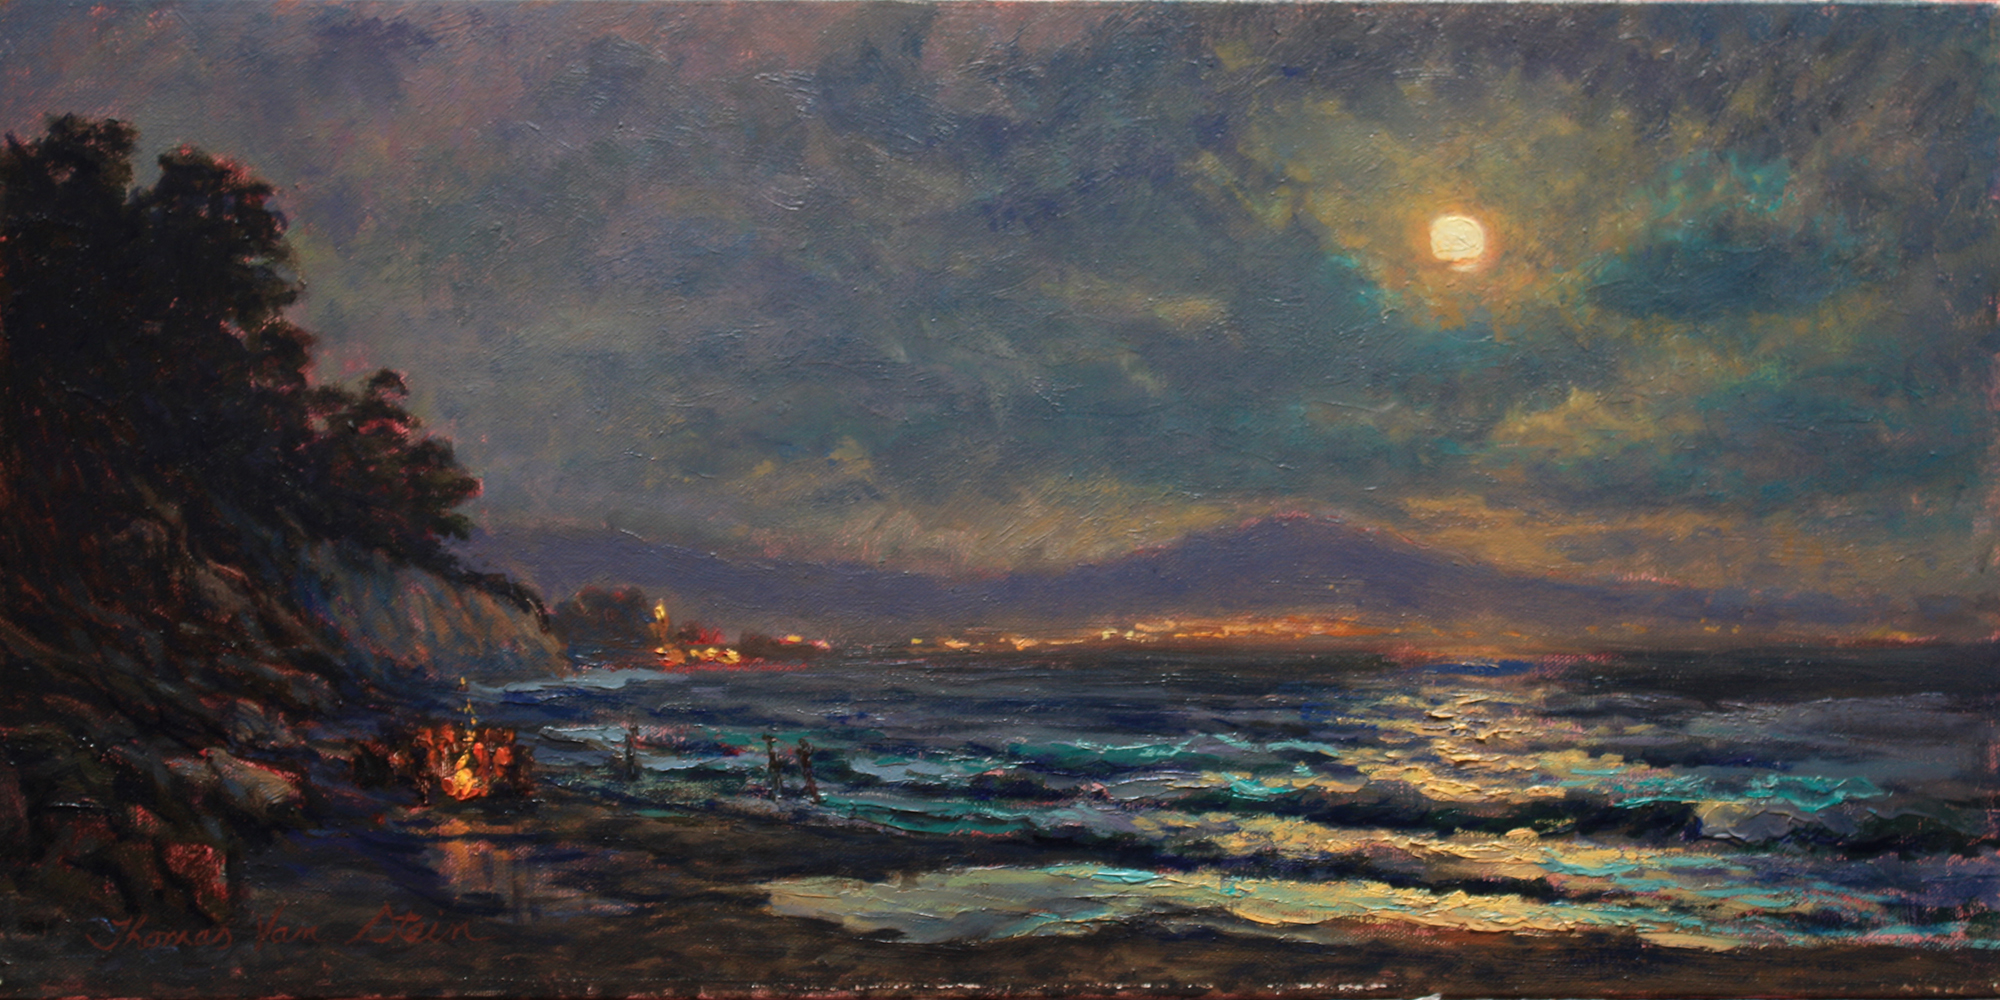 Moonlight Bathers , 12 x 24 , oil on canvas, 2019